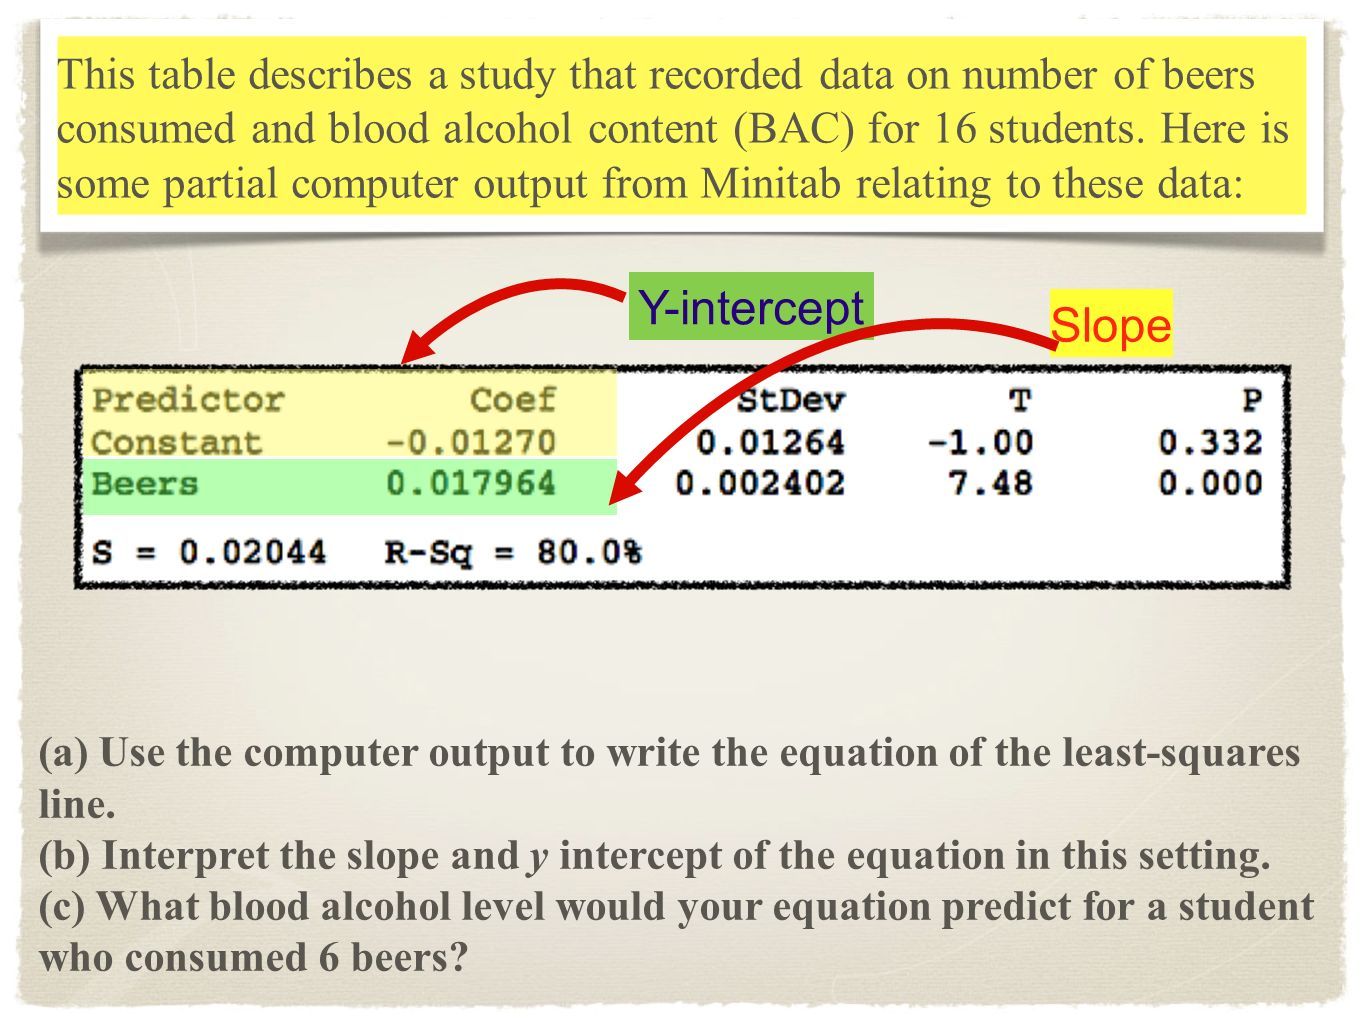 This table describes a study that recorded data on number of beers consumed and blood alcohol content (BAC) for 16 students. Here is some partial computer output from Minitab relating to these data: